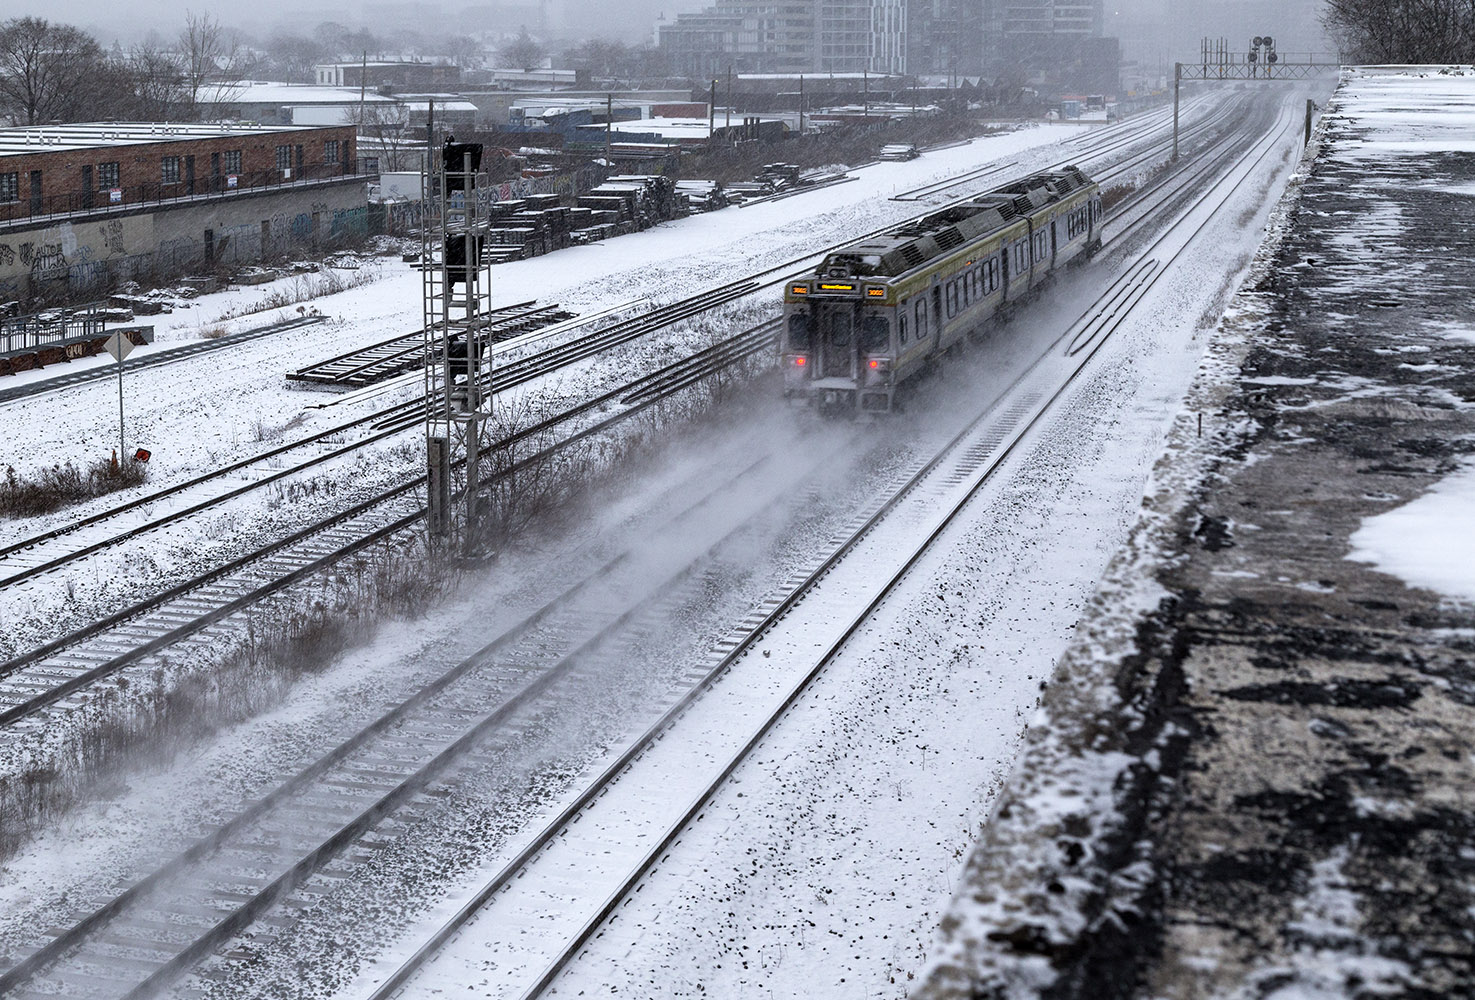 20161213. Like Snowpiercer, the Union Pearson Express flies thro